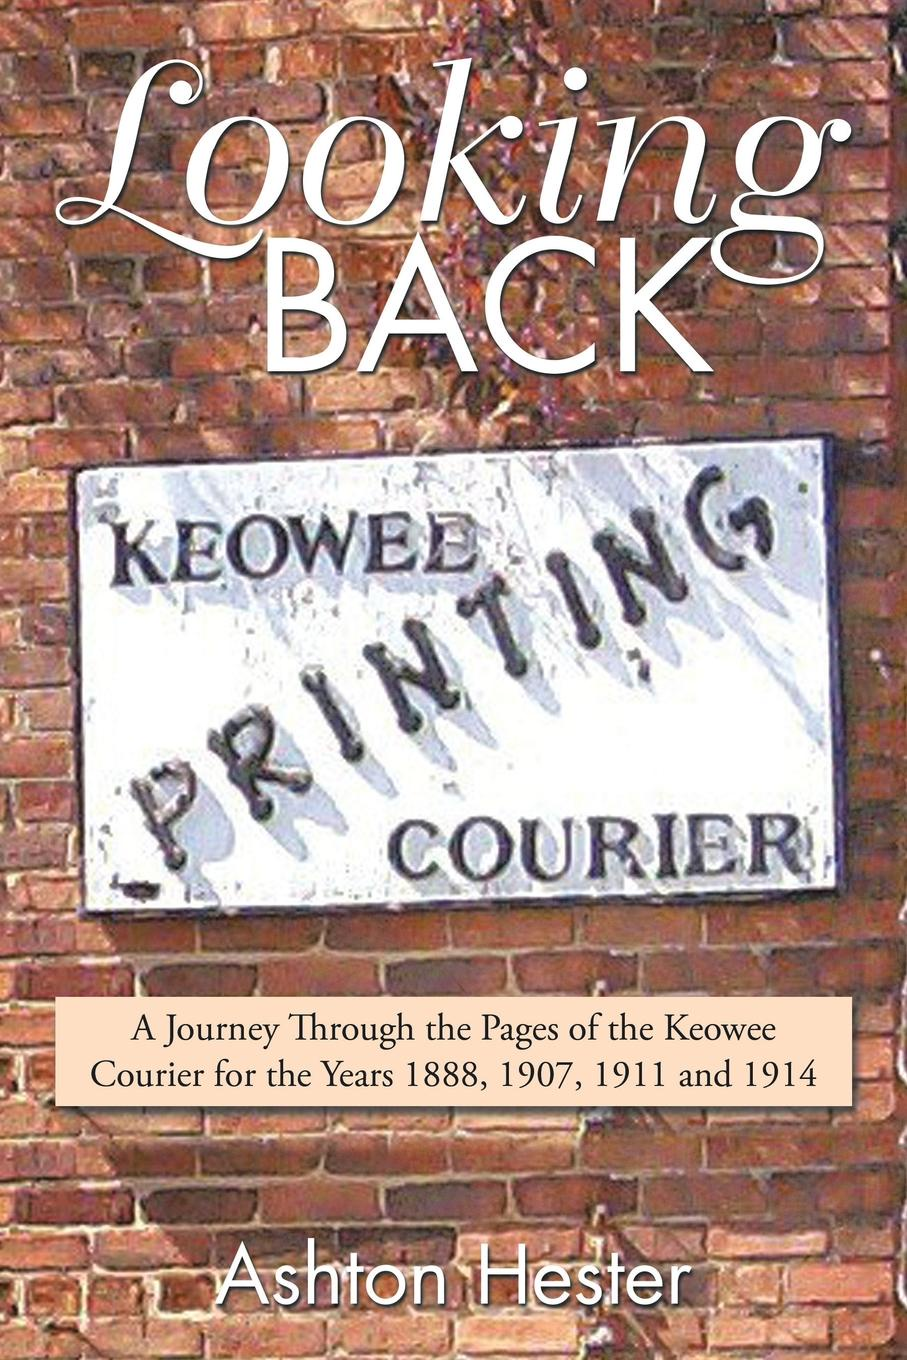 цена Ashton Hester Looking Back. A Journey Through the Pages of the Keowee Courier for the Years 1888, 1907, 1911 and 1914 онлайн в 2017 году